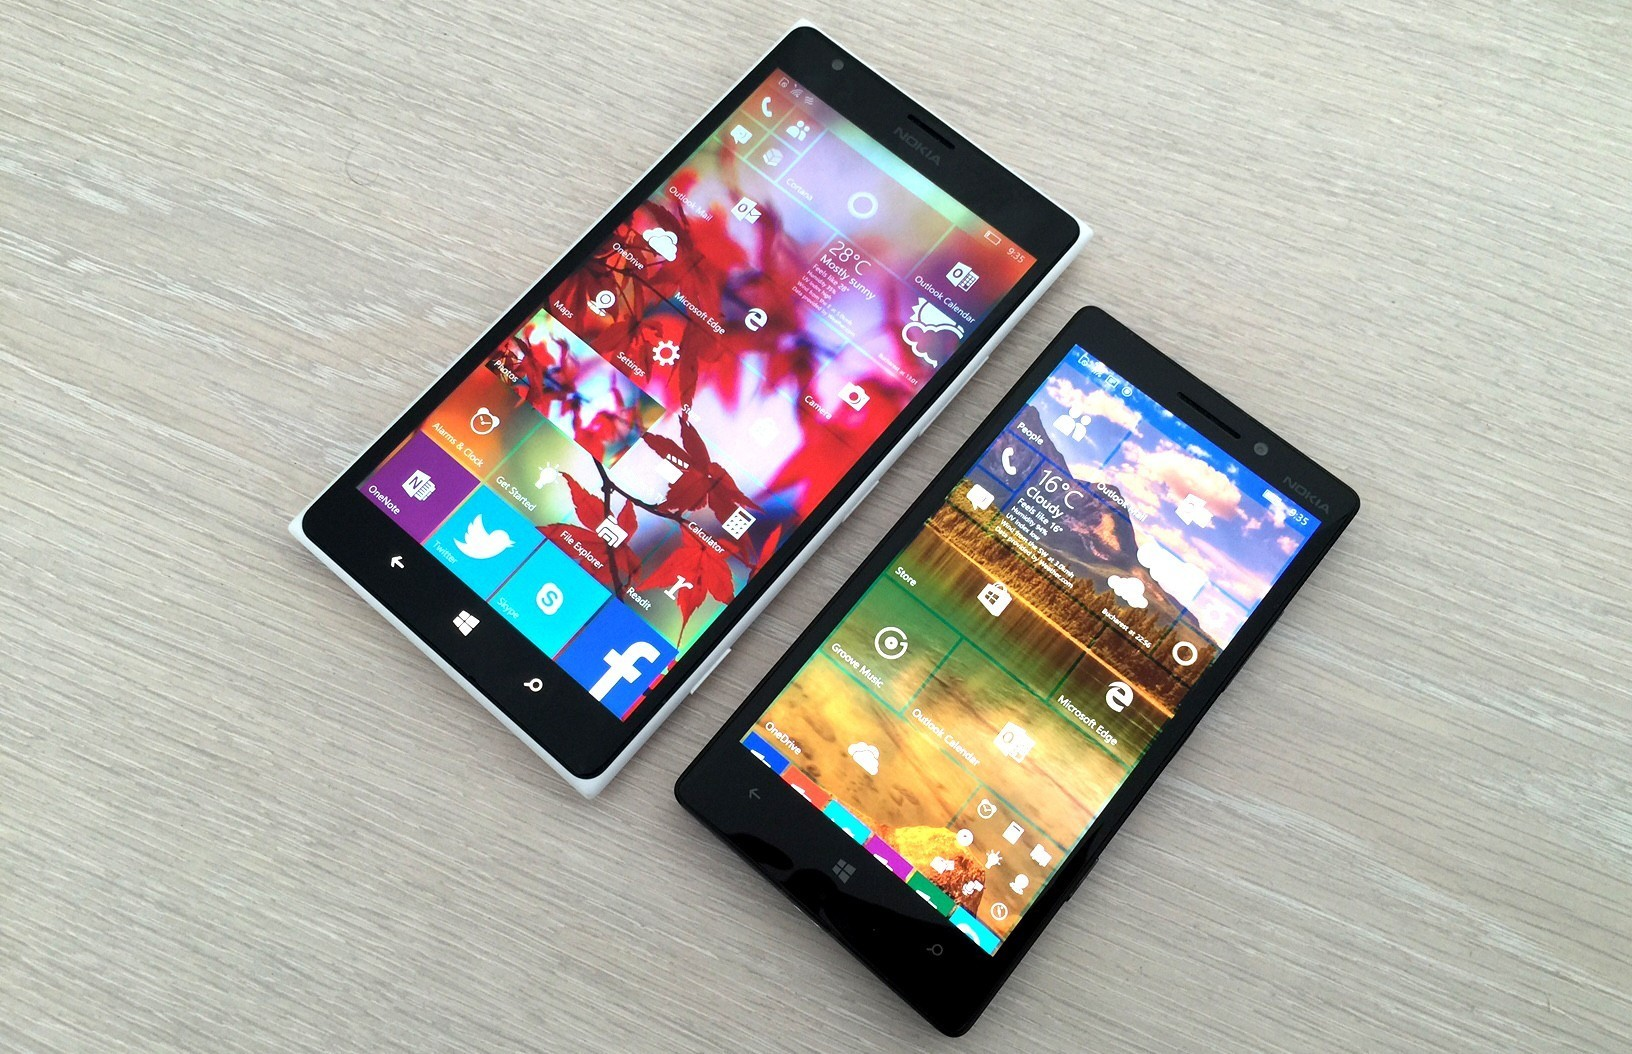 Windows 10 Mobile Getting Its Own Share Of Improvements With This Build